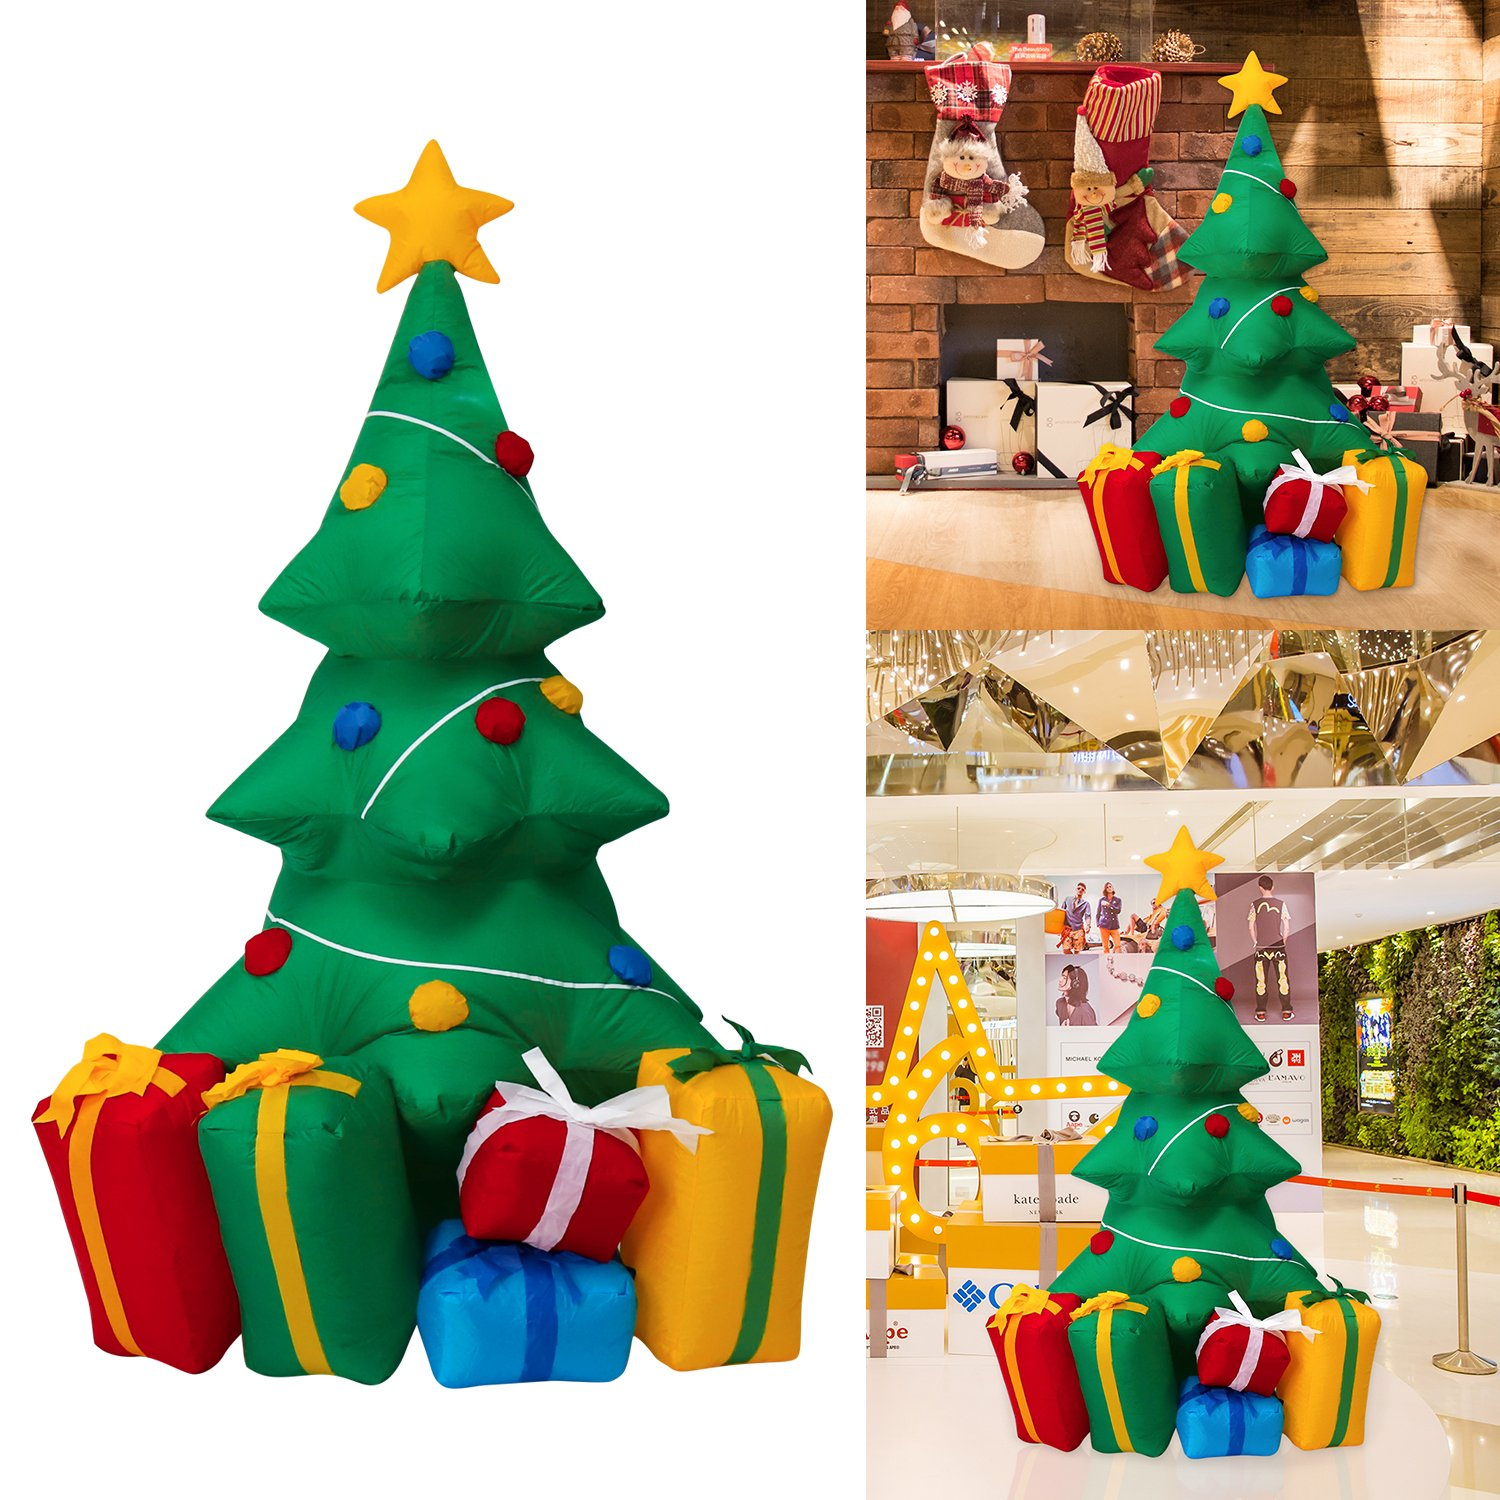 Peach Tree 5 Foot Inflatable Christmas Tree with Gift Boxes Air Blown Outdoor Indoor Yard Garden Decoration by Peachtree Audio